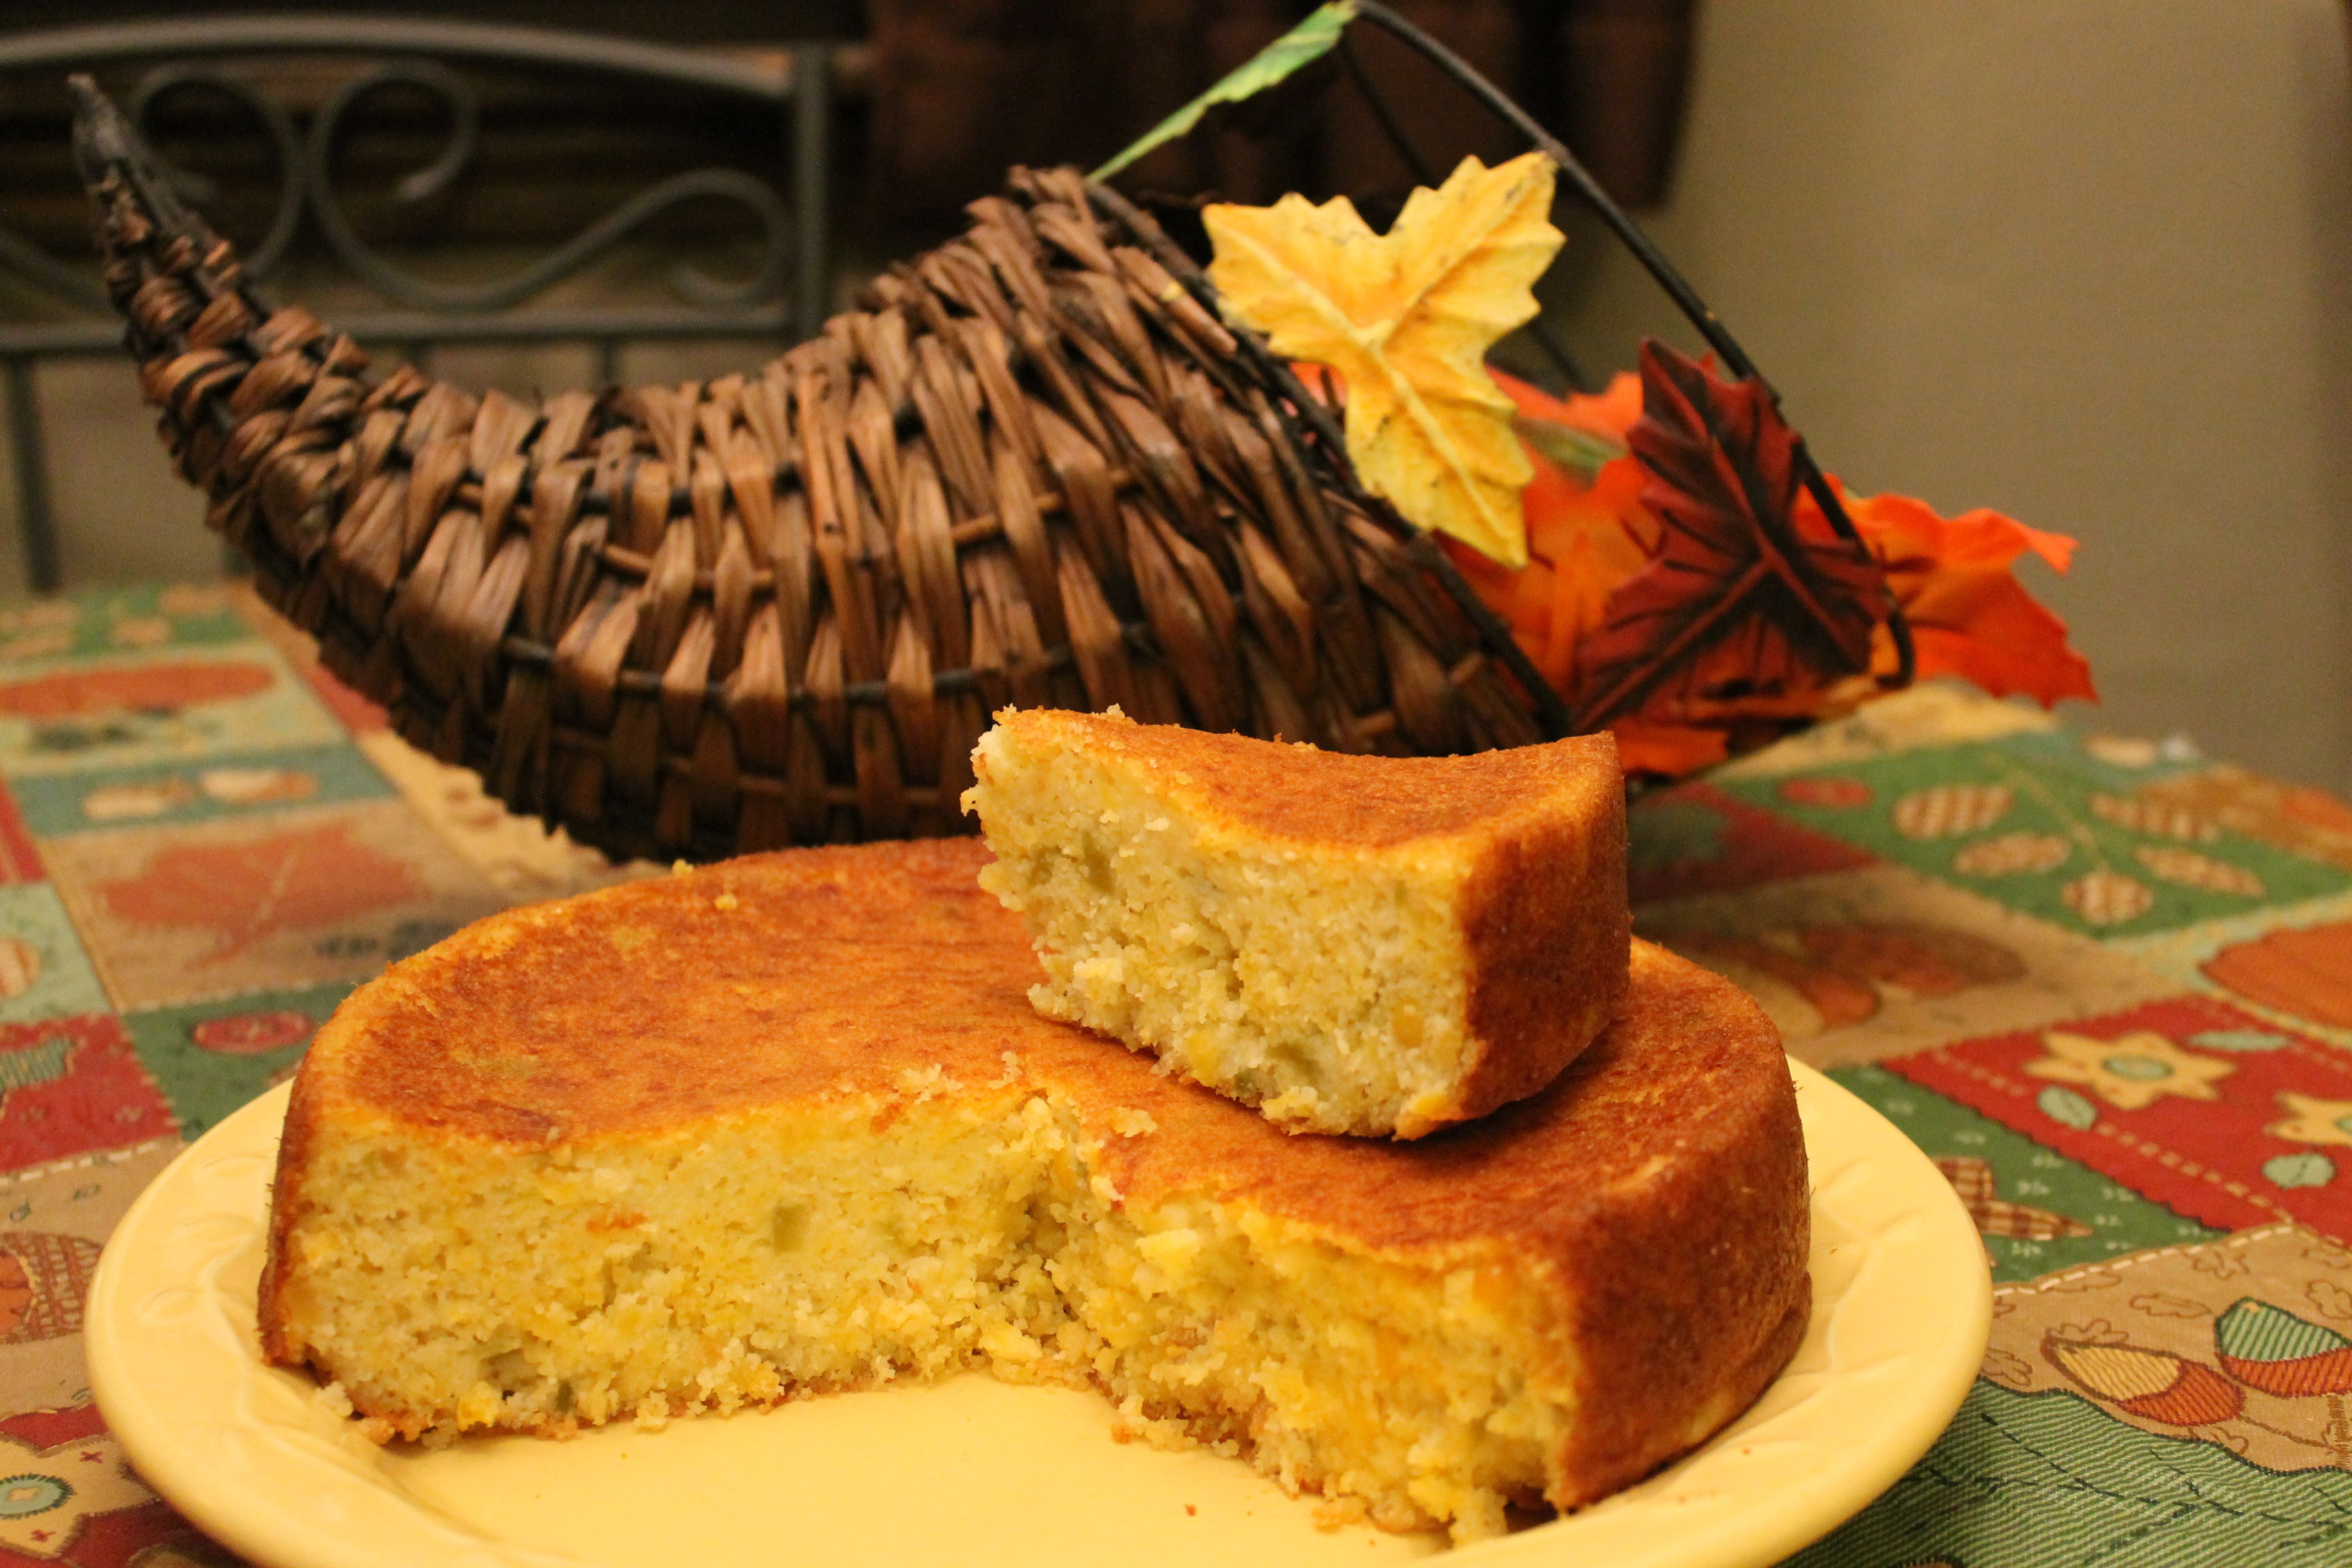 Mexican Cornbread 1 1 2 Cups Martha White Buttermilk Self Rising Corn Meal Mix 1 Cup Milk 1 3 Cup Of Vegetable Mexican Cornbread Favorite Recipes Food